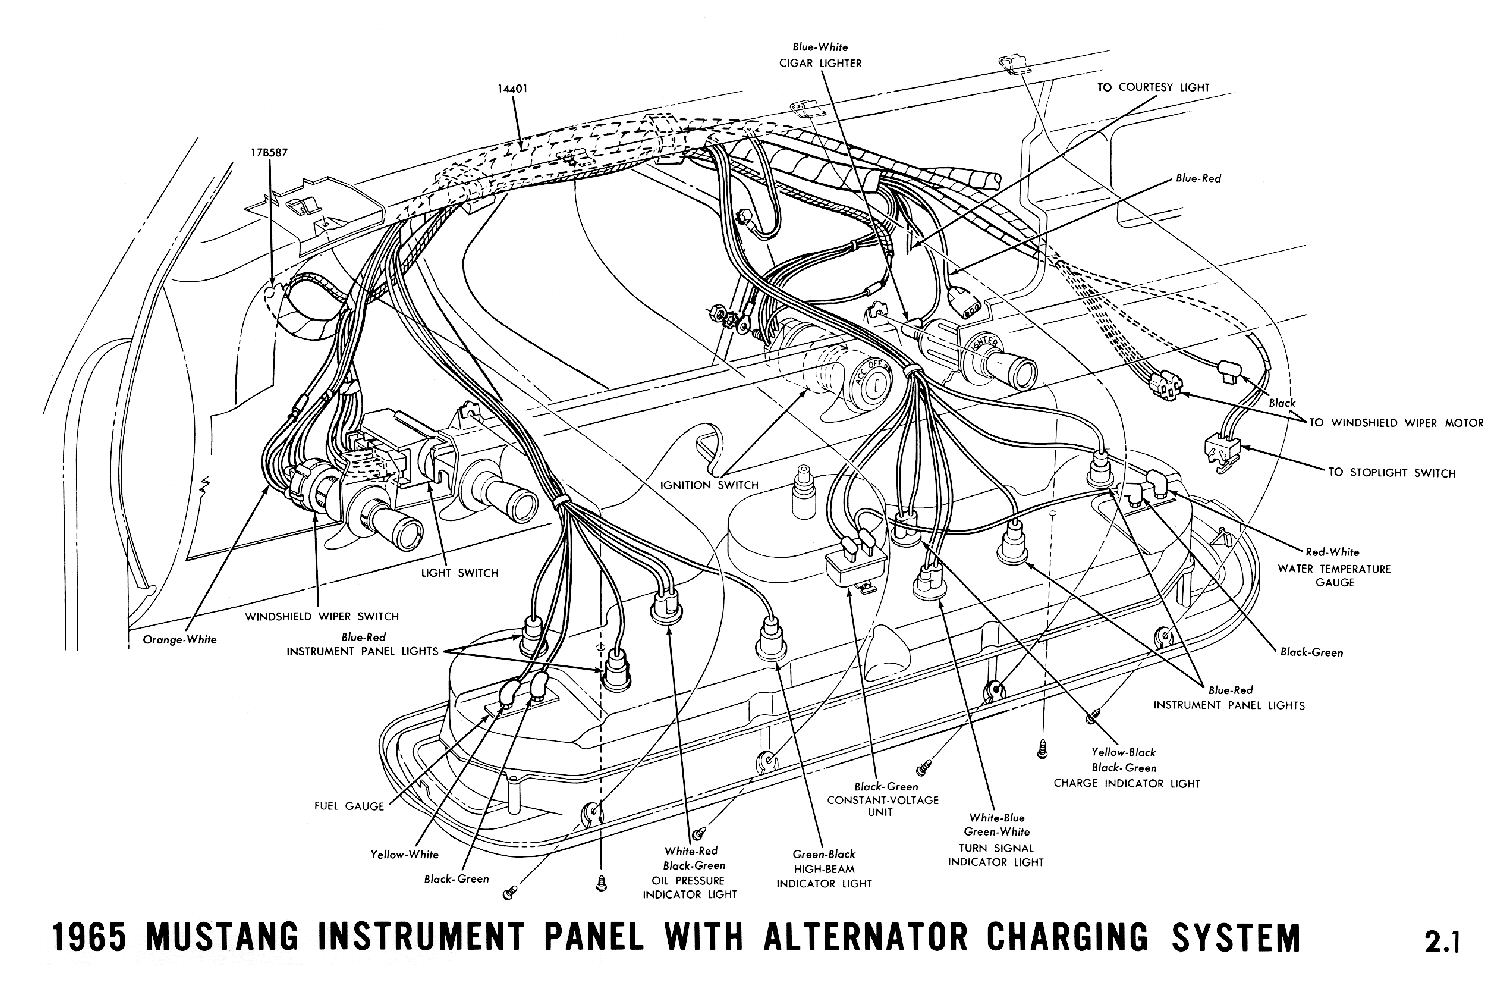 1965a 1965 mustang wiring diagrams average joe restoration 1965 mustang under dash wiring diagram at love-stories.co